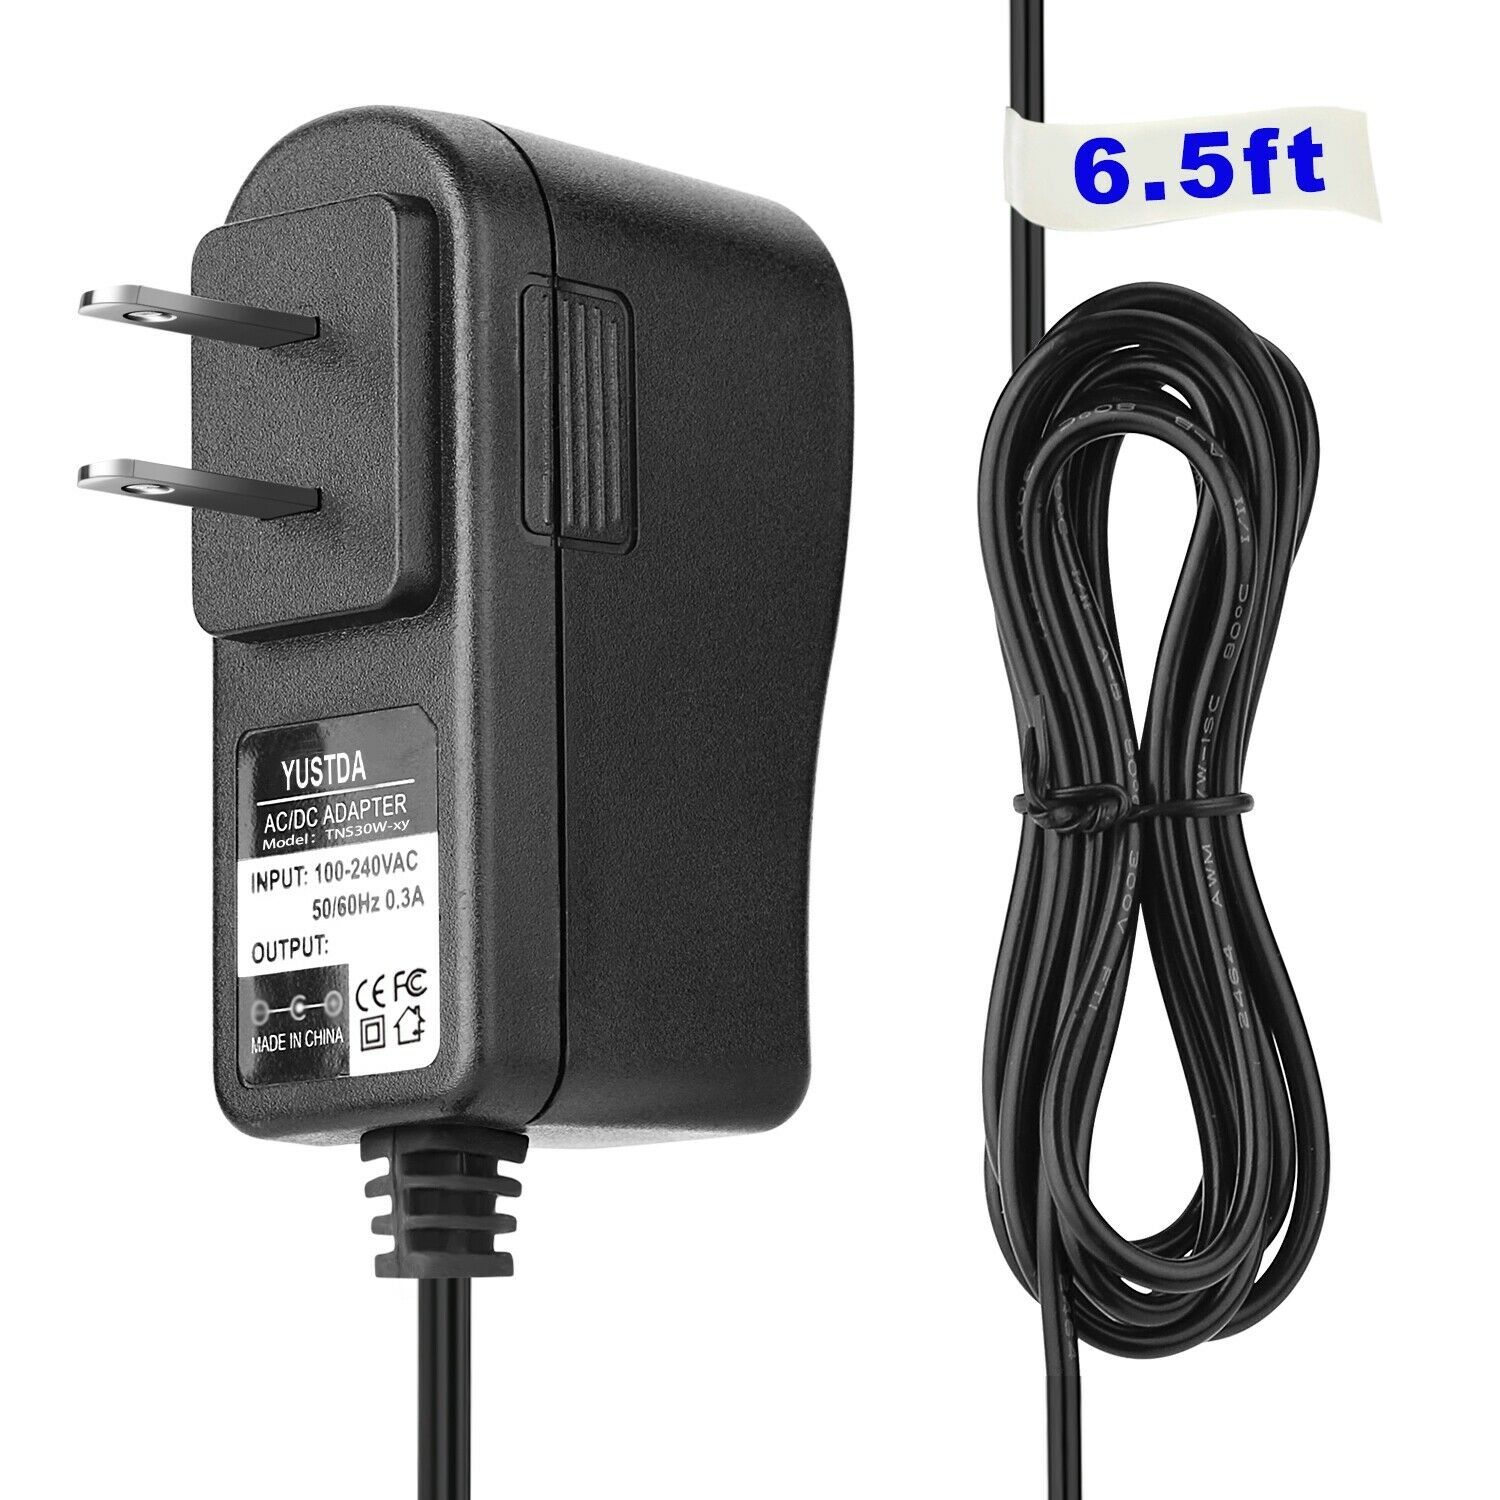 Adapter for CAT Rechargeable LED Work Light WorkLights 96284